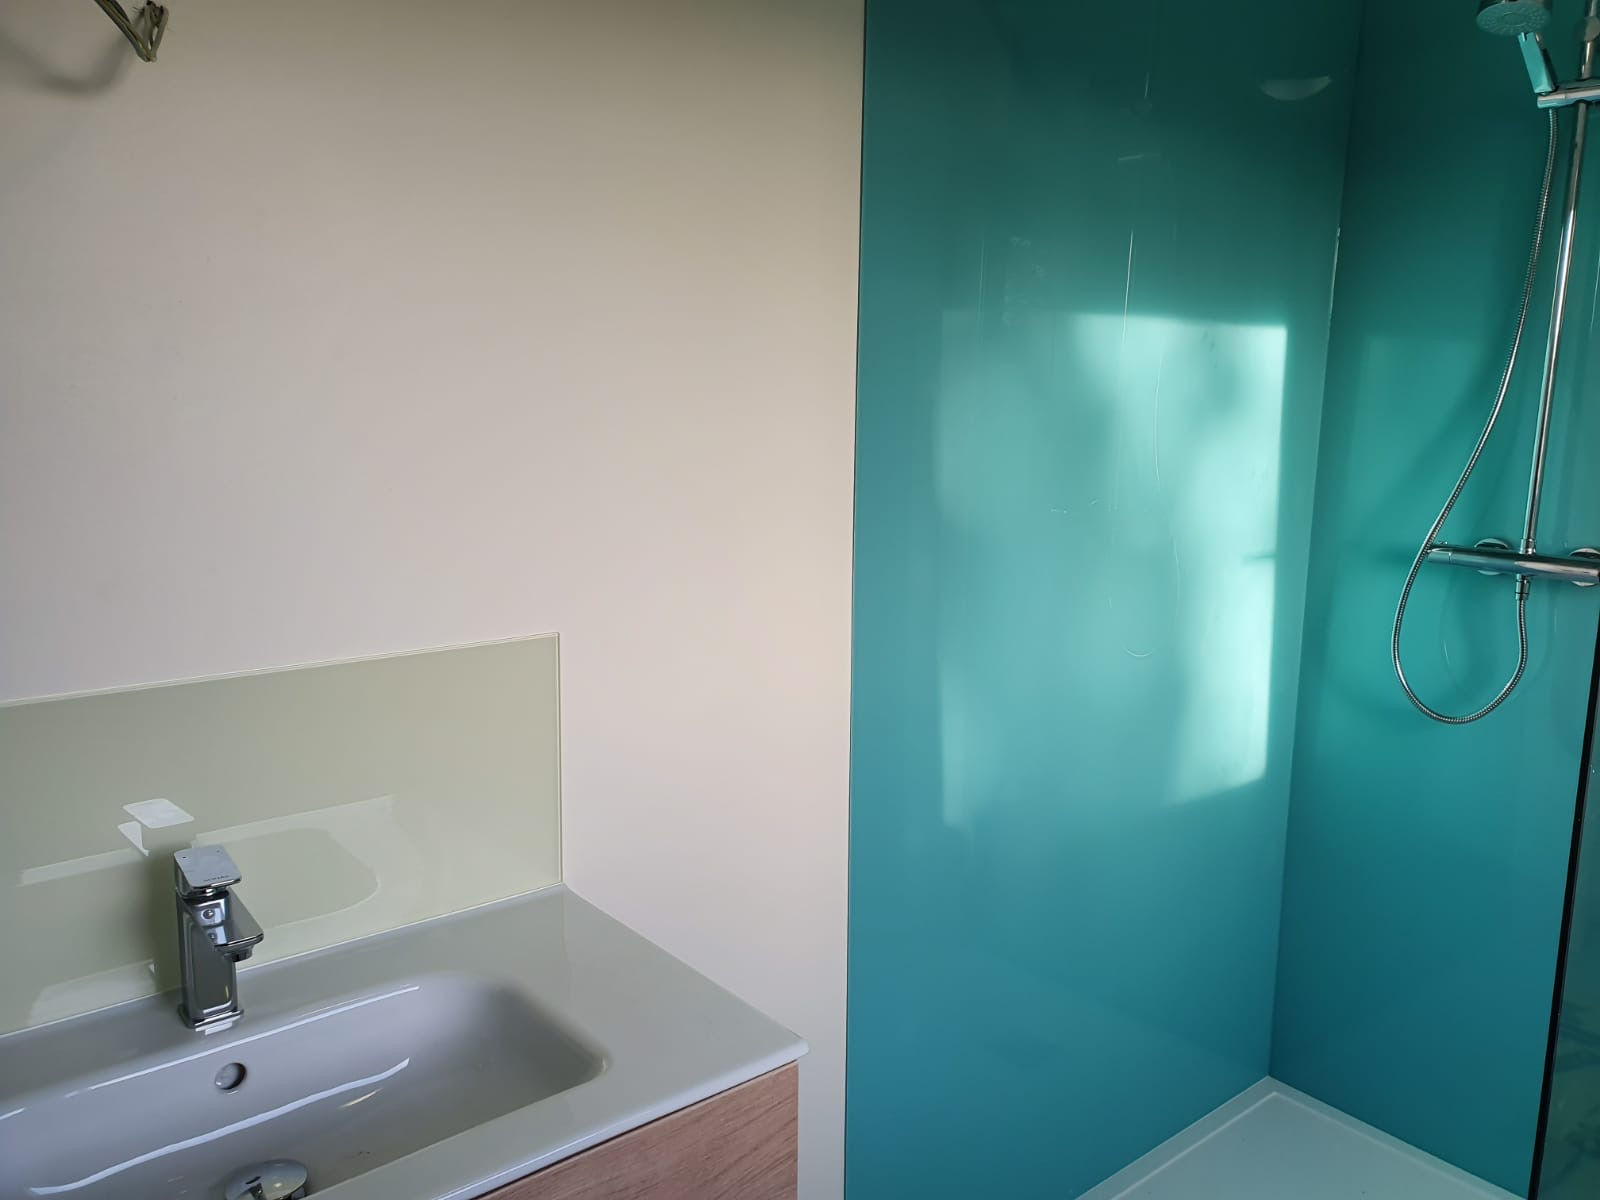 Bathroom Walls Top Glass Splashbacks Dublin Ireland